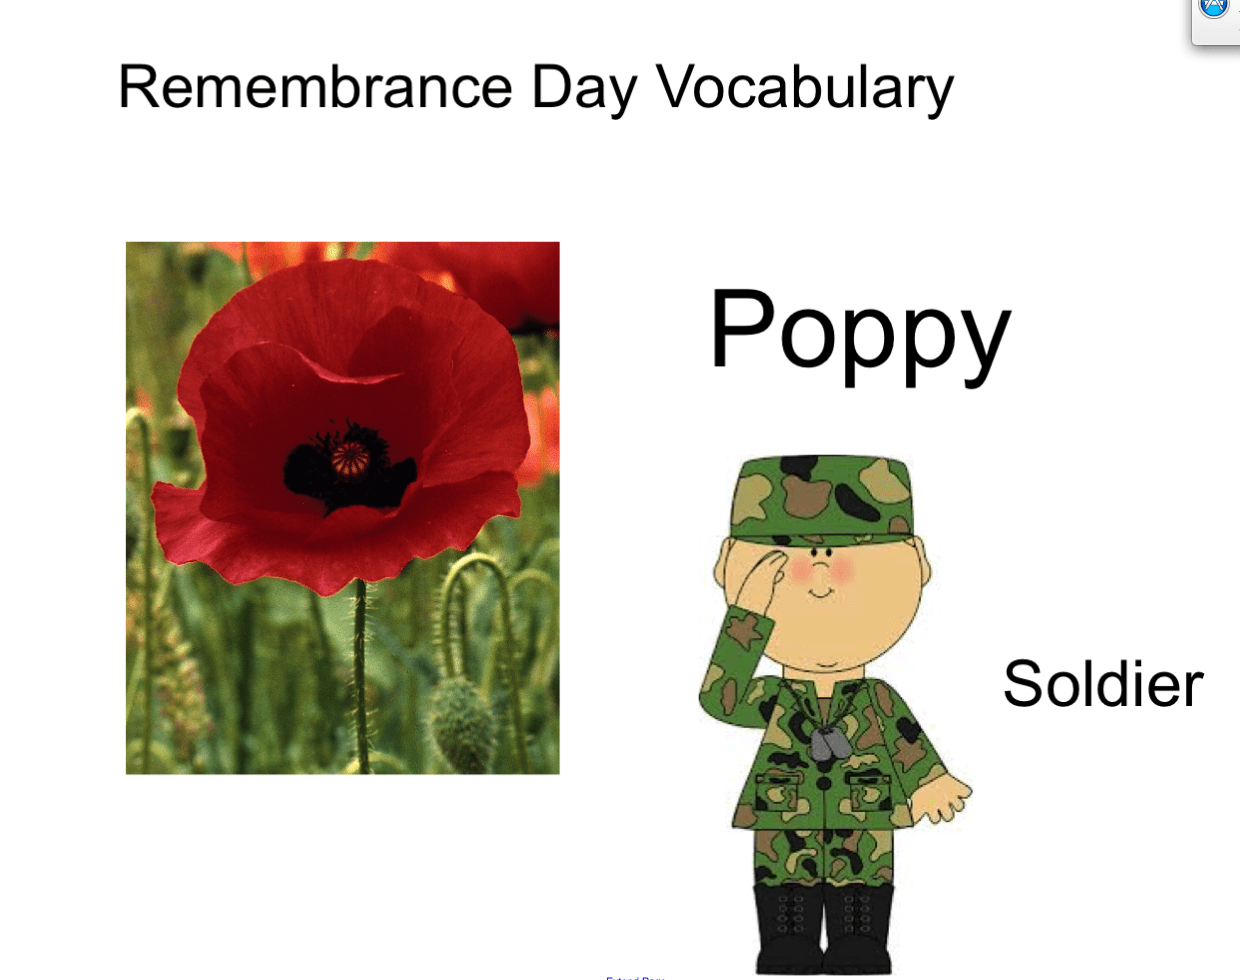 Remembrance Day Vocabulary Smart Notebook Smart Board Ideas